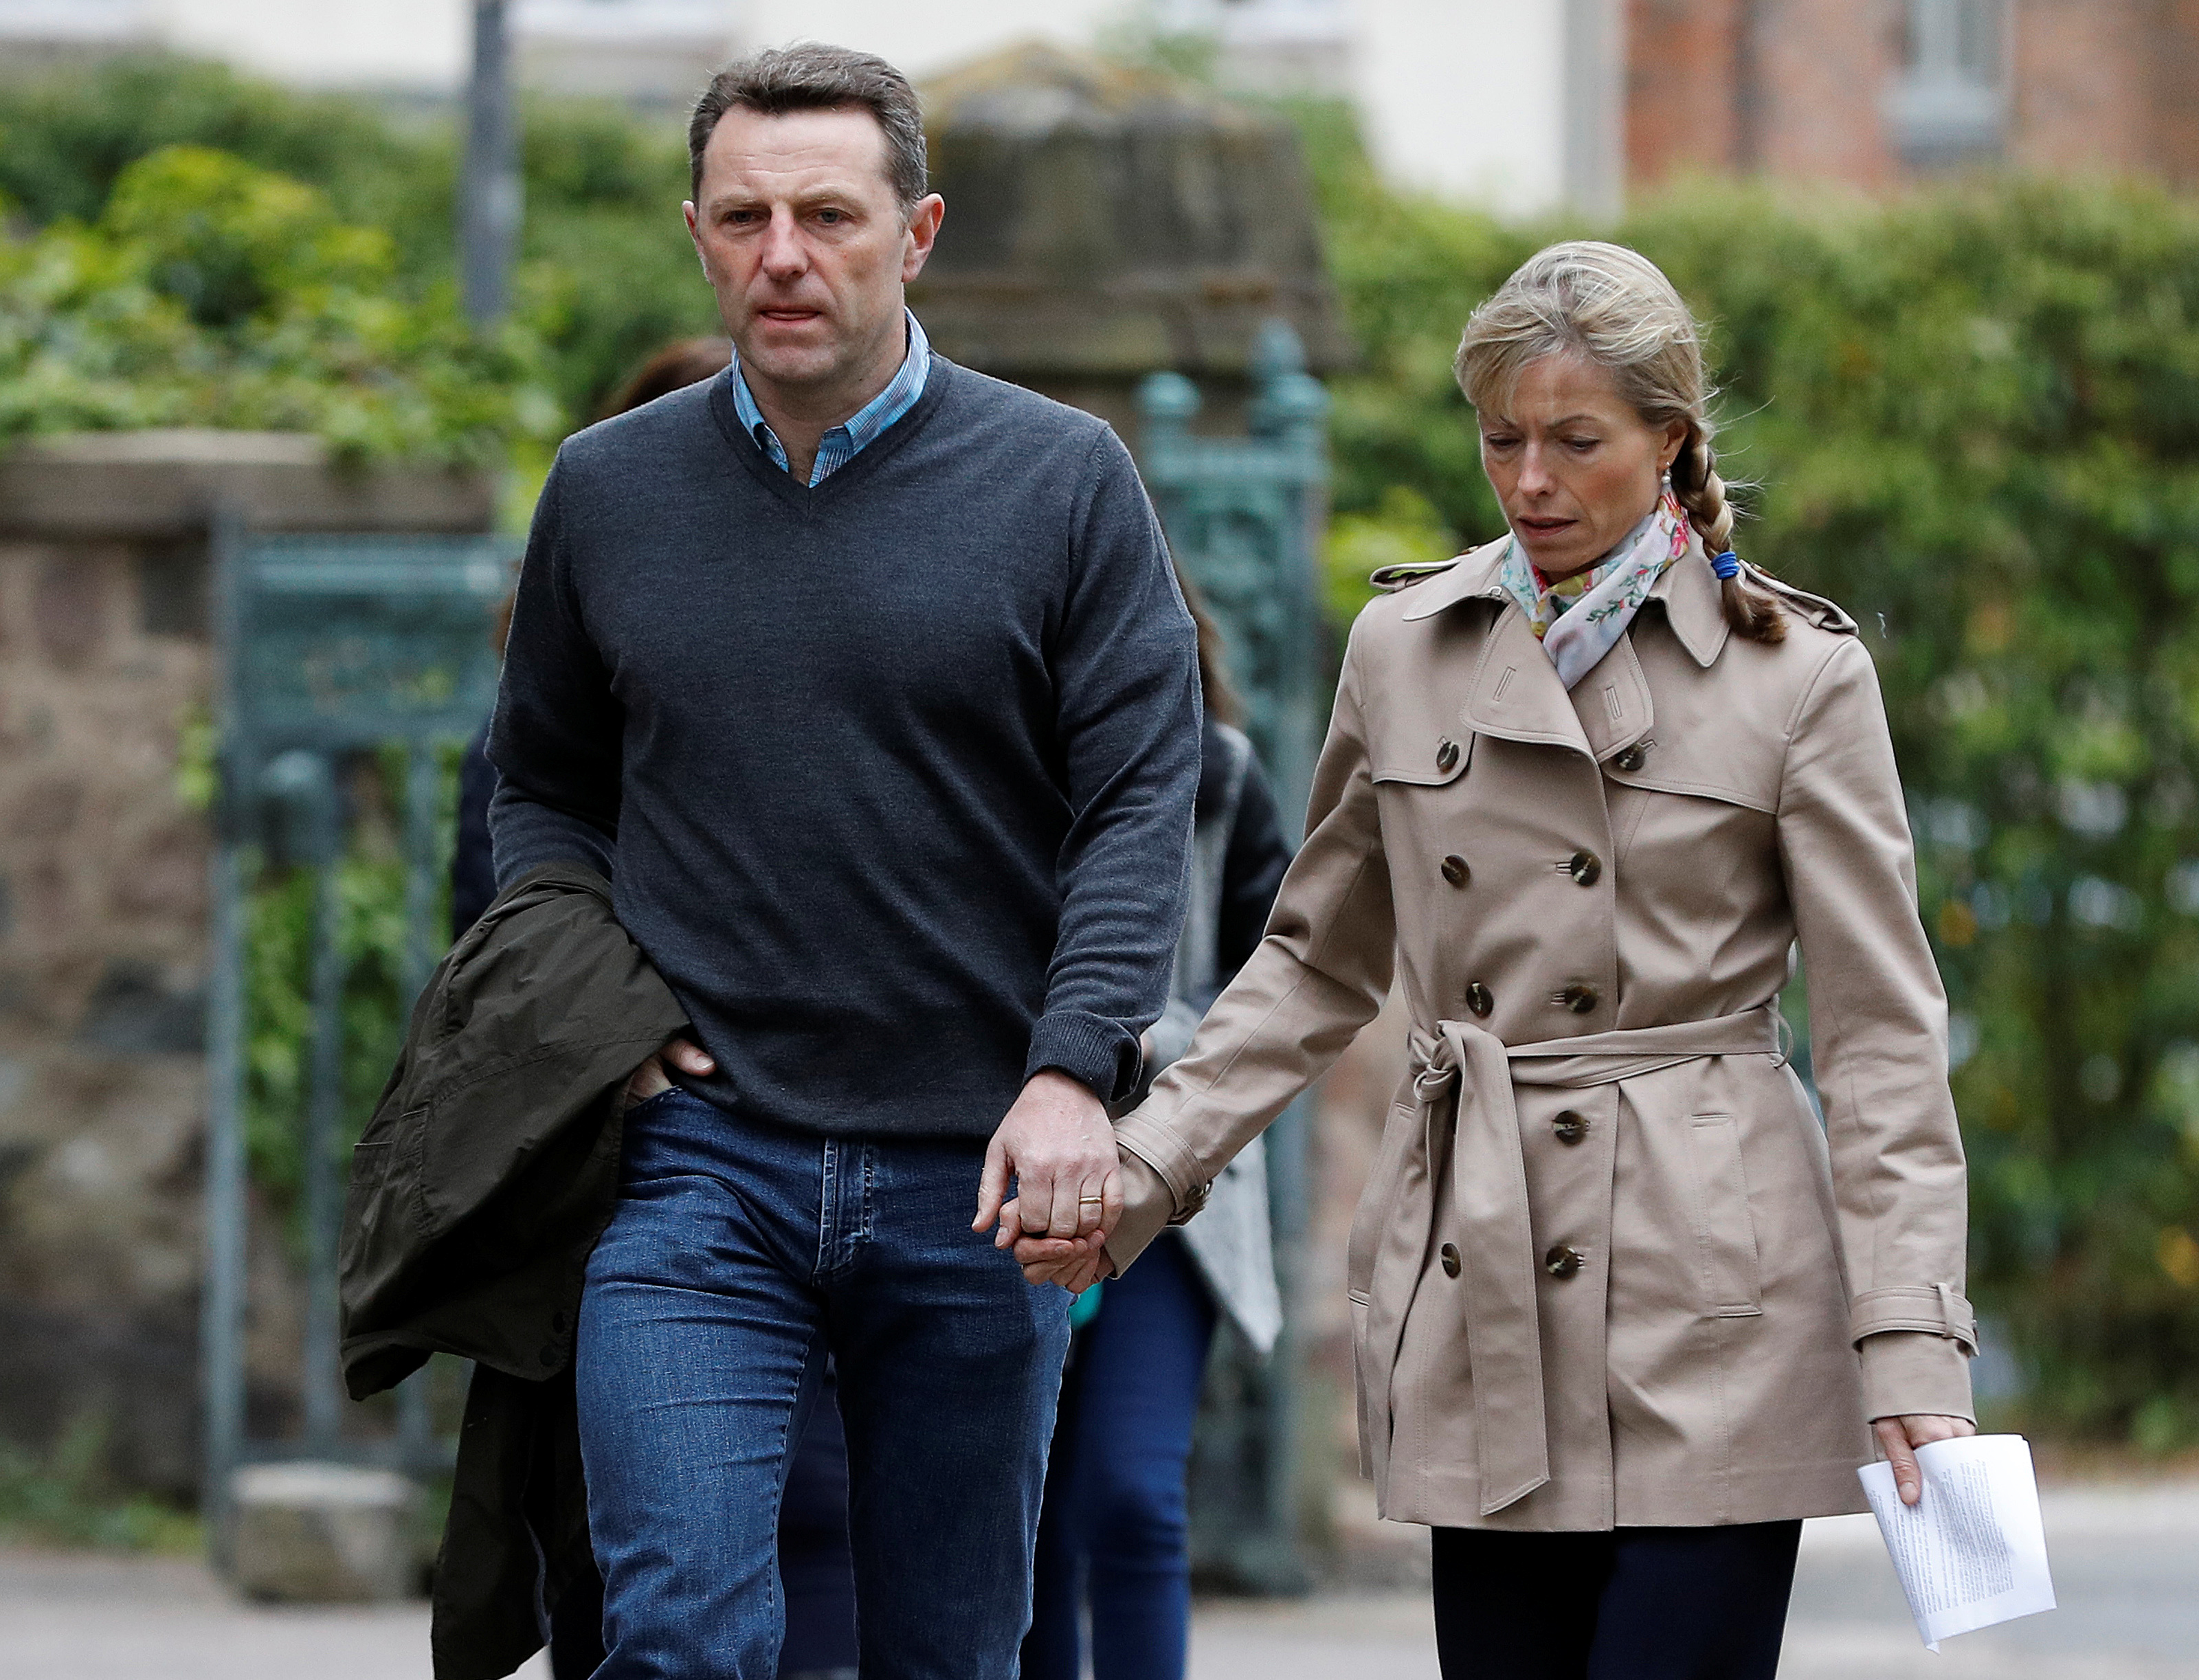 Kate and Gerry McCann arrive for a service to mark the 10th anniversary of the disappearance of their daughter Madeleine, at St Mary and St John church in Rothley, Britain May 3, 2017. REUTERS/Darren Staples